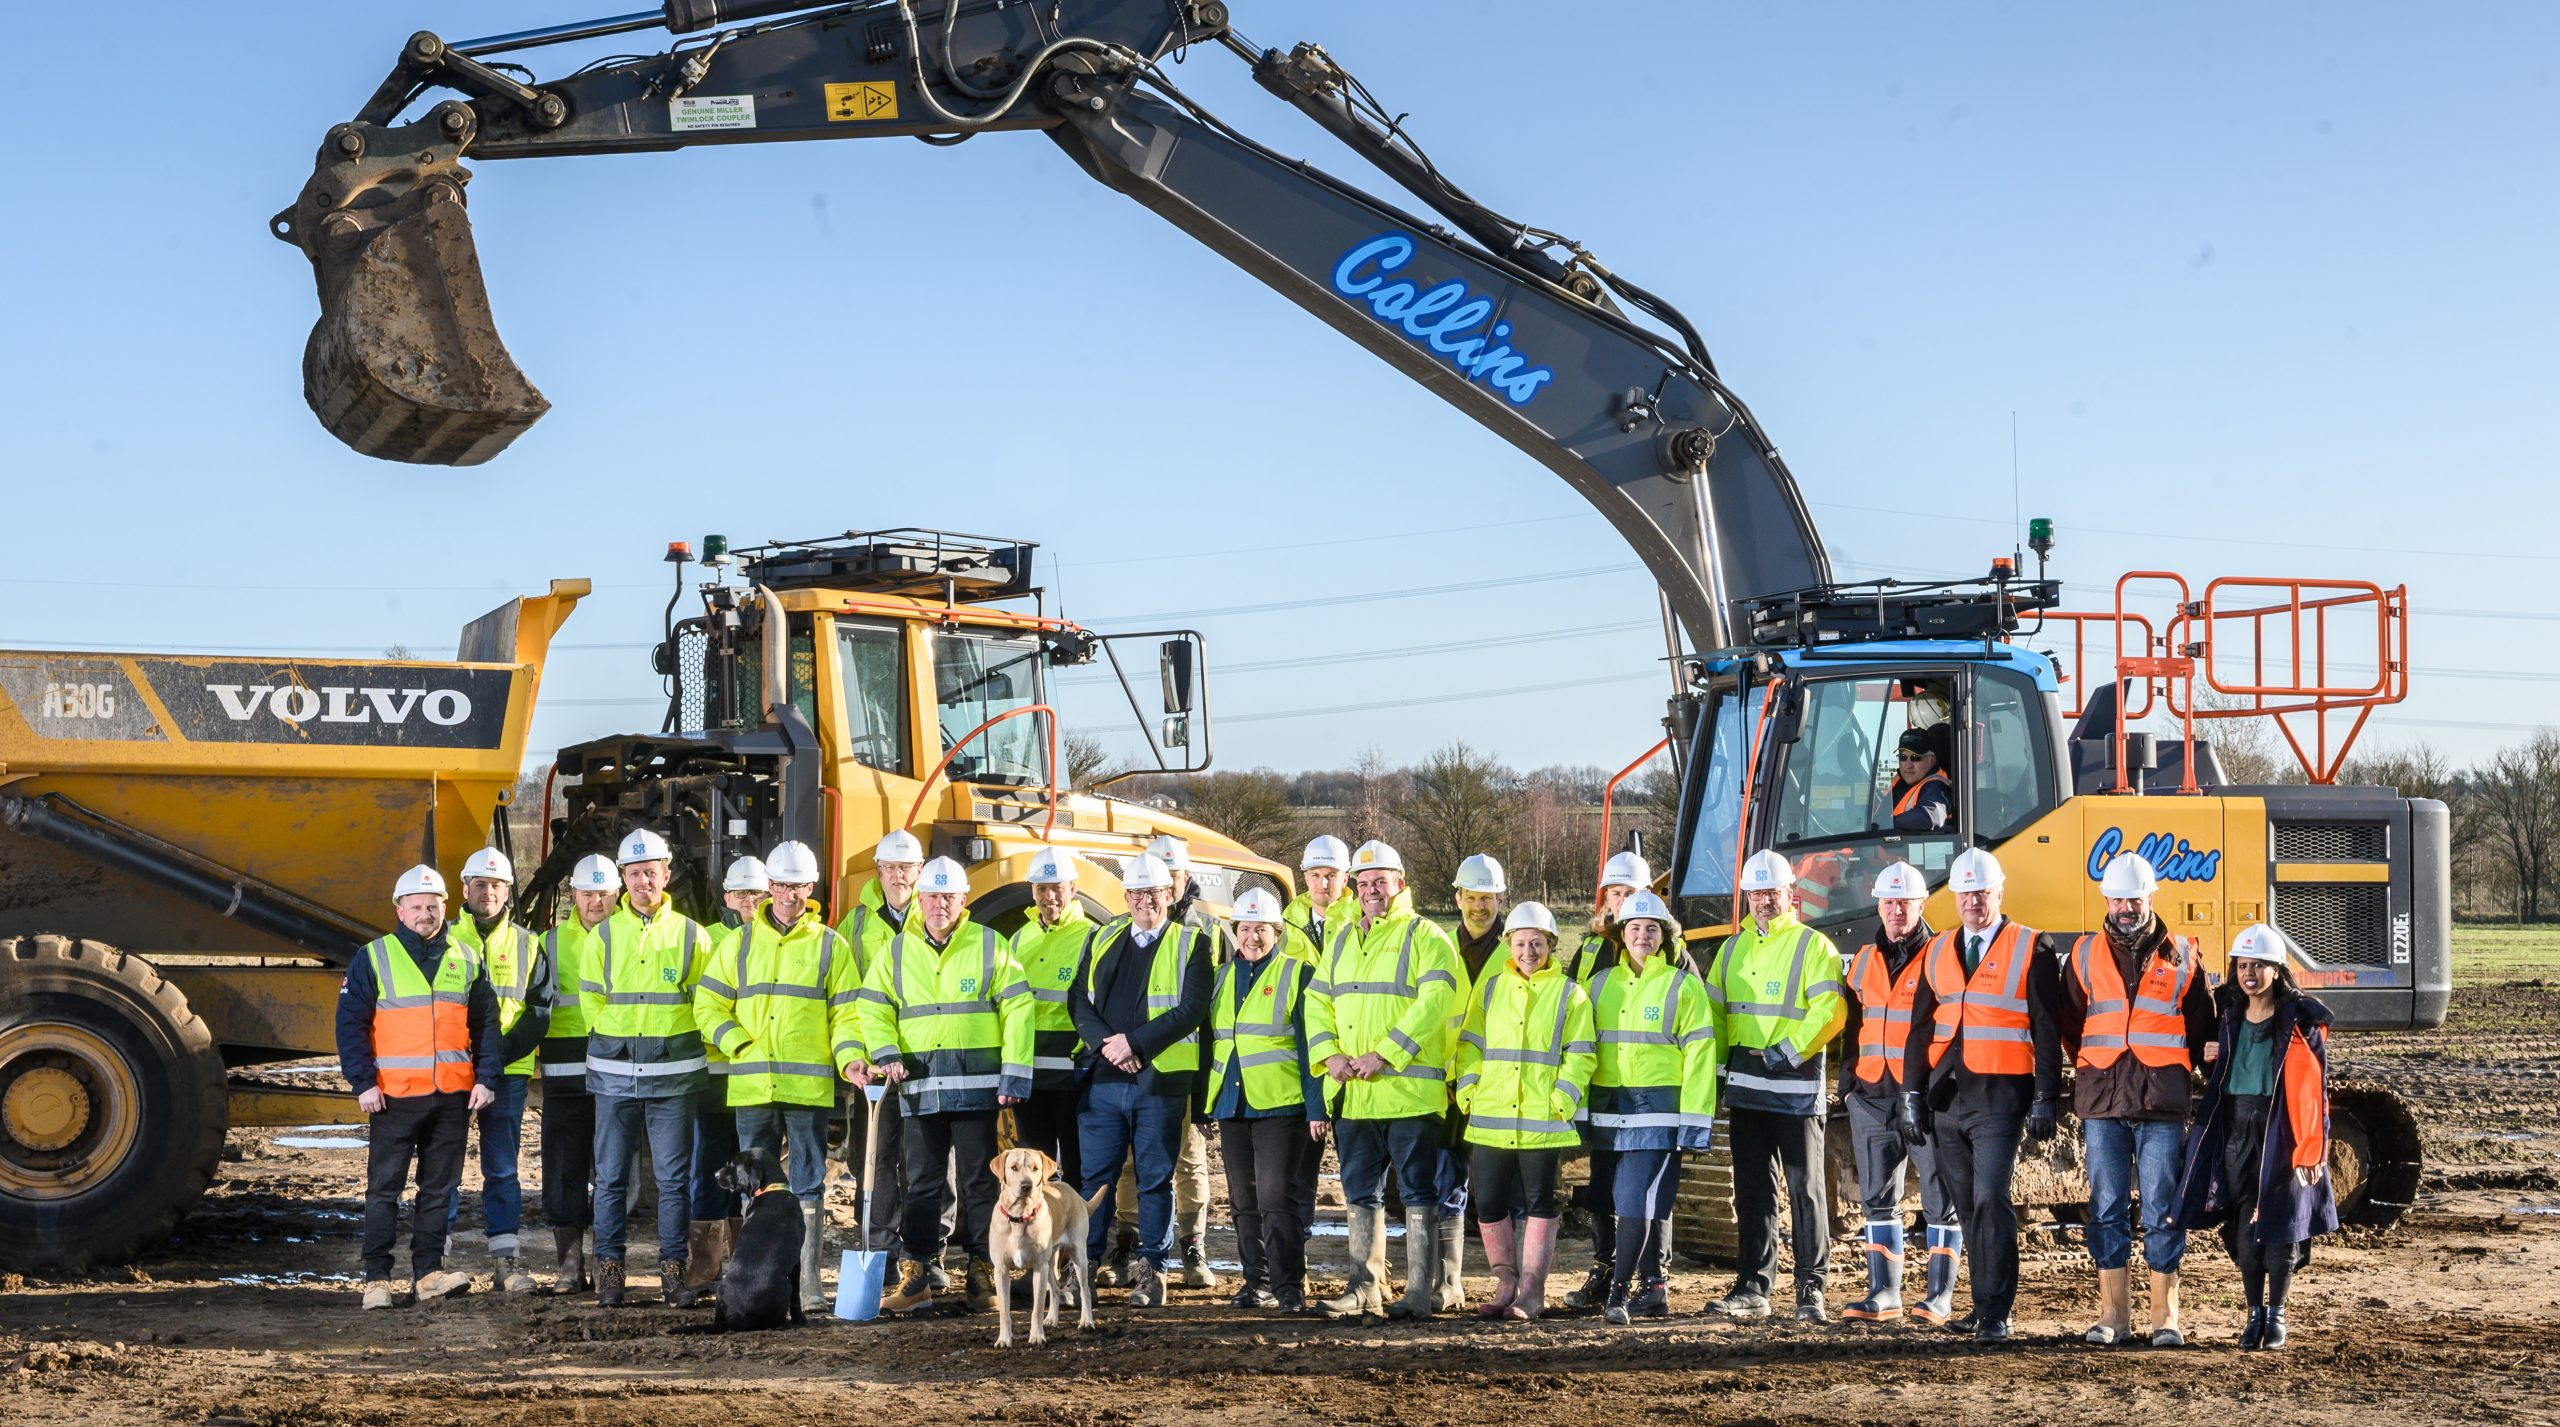 Sod-cutting ceremony at Symmetry Park, Biggleswade.